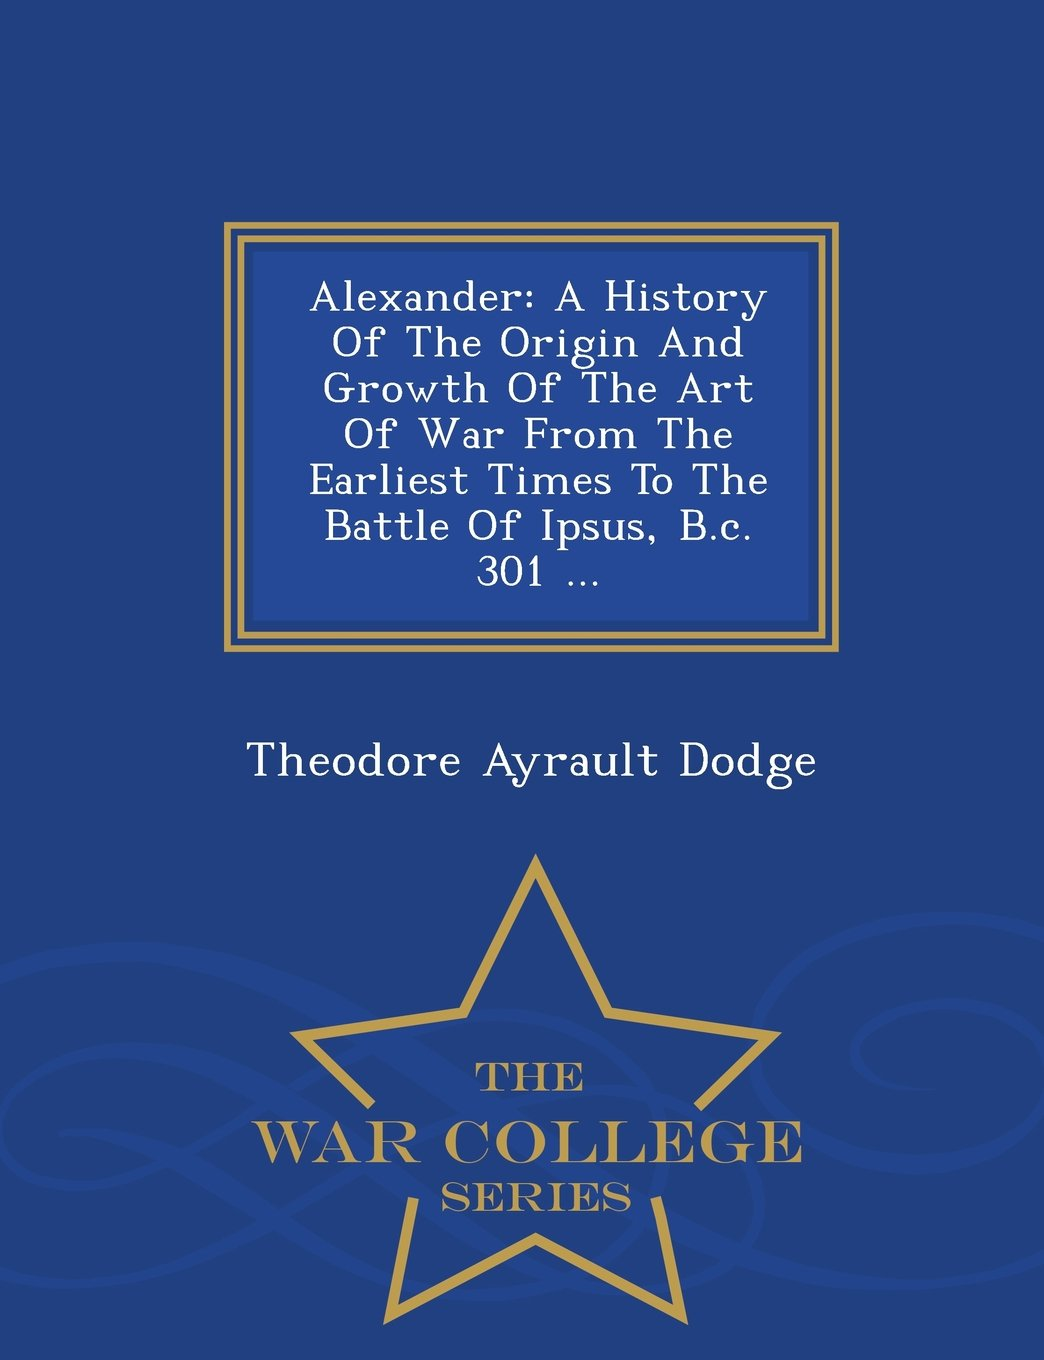 Alexander: A History Of The Origin And Growth Of The Art Of War From The Earliest Times To The Battle Of Ipsus, B.c. 301 ... - War College Series pdf